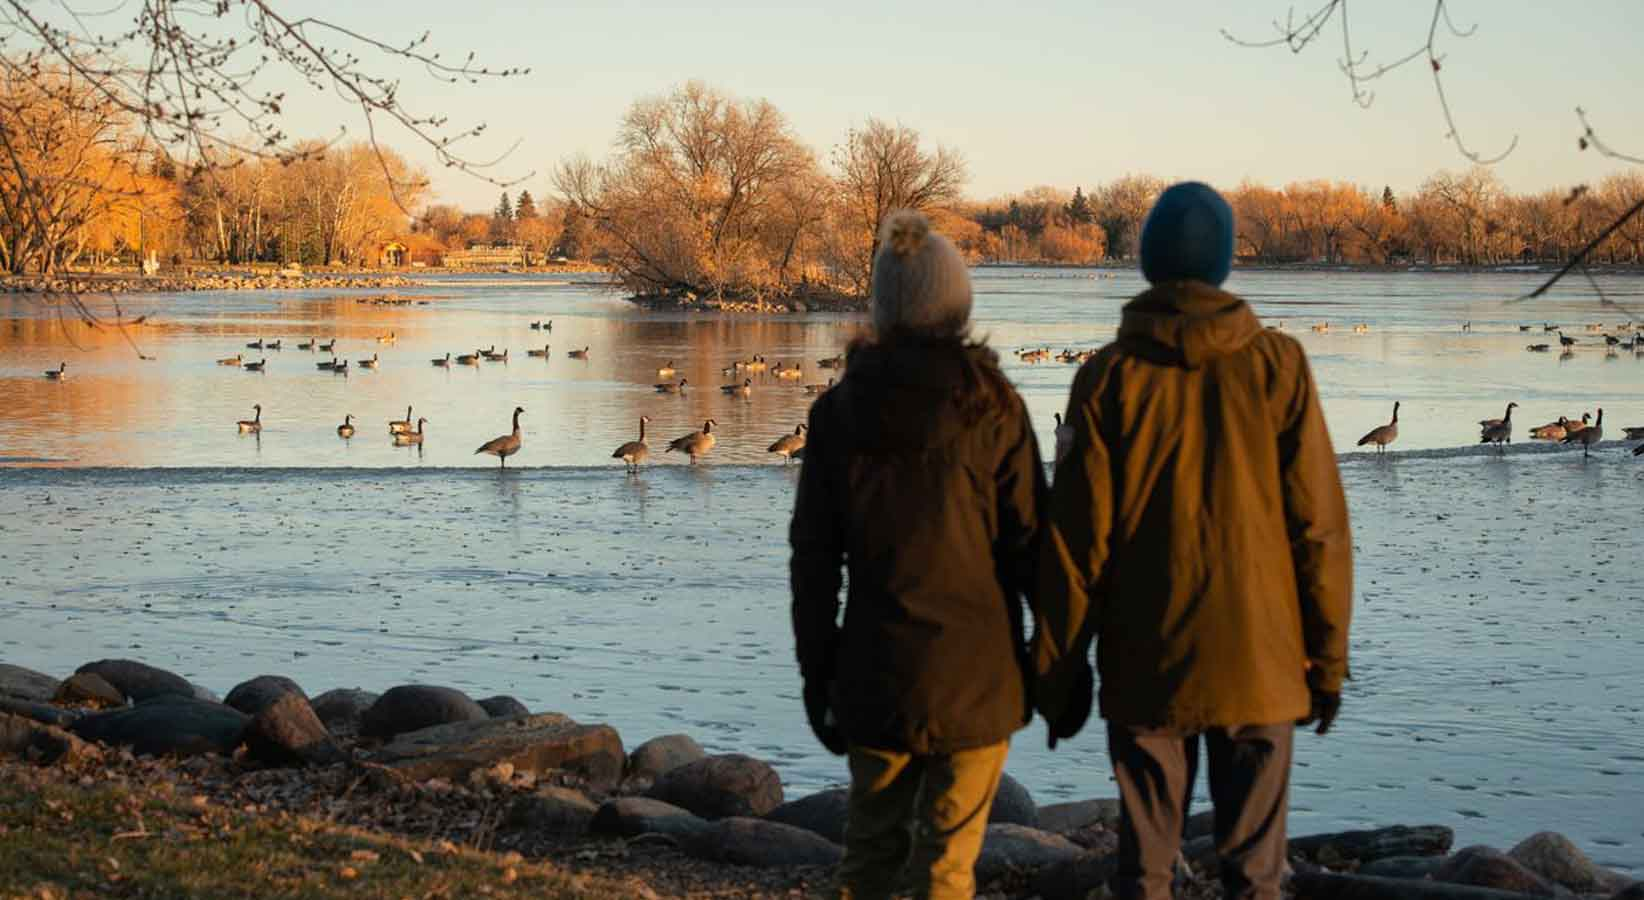 The back of two people holding hands looking at waterfowl on a pond in Lethbridge, Alberta.